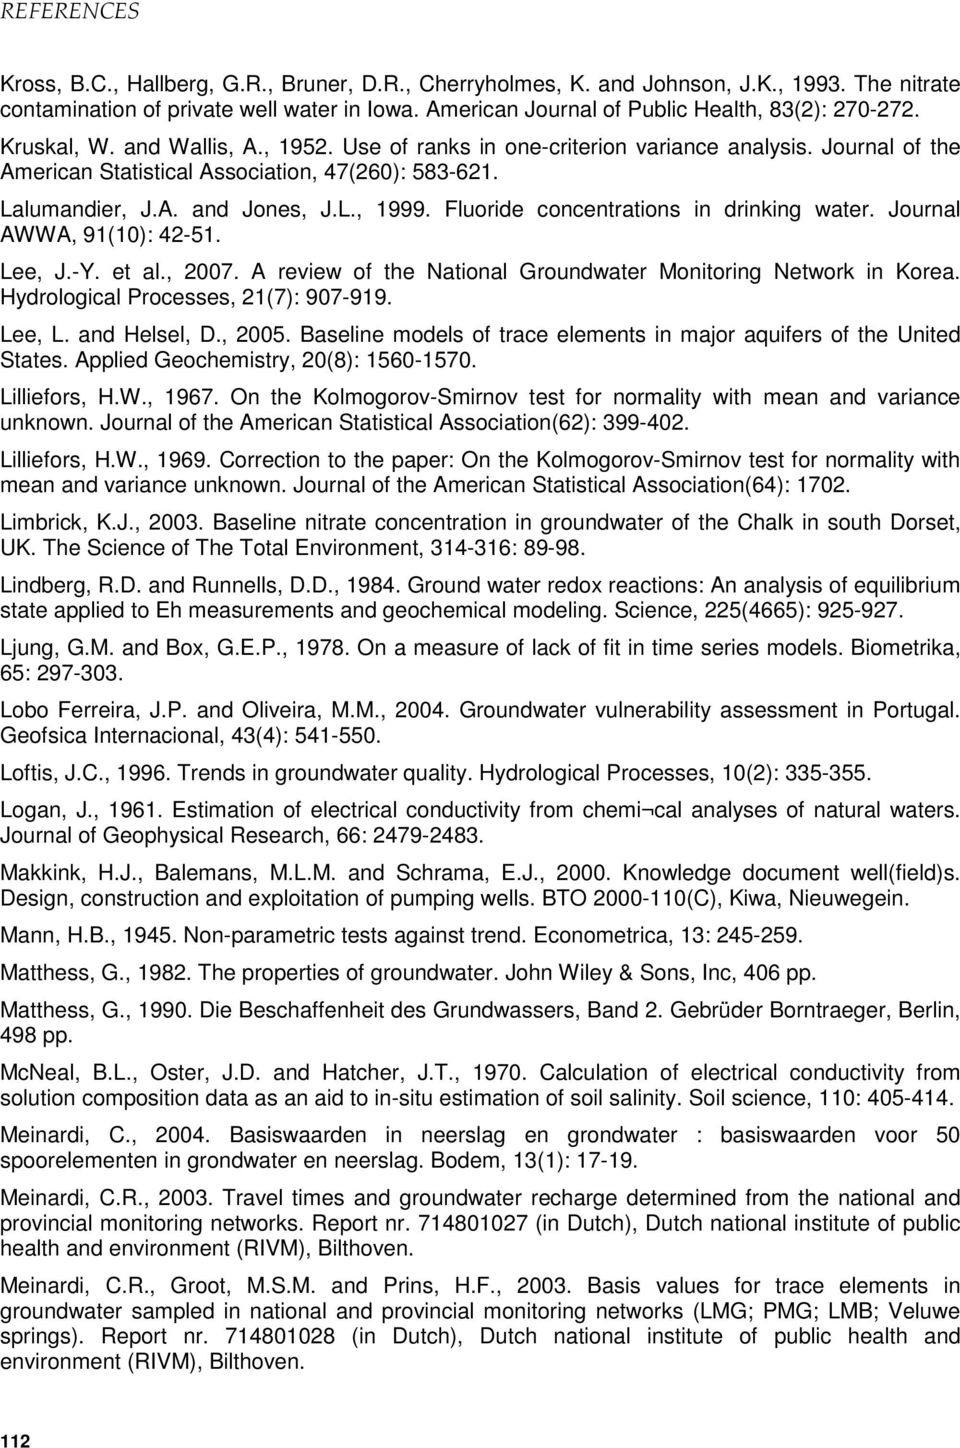 Fluoride concentrations in drinking water. Journal AWWA, 91(10): 42-51. Lee, J.-Y. et al., 2007. A review of the National Groundwater Monitoring Network in Korea.